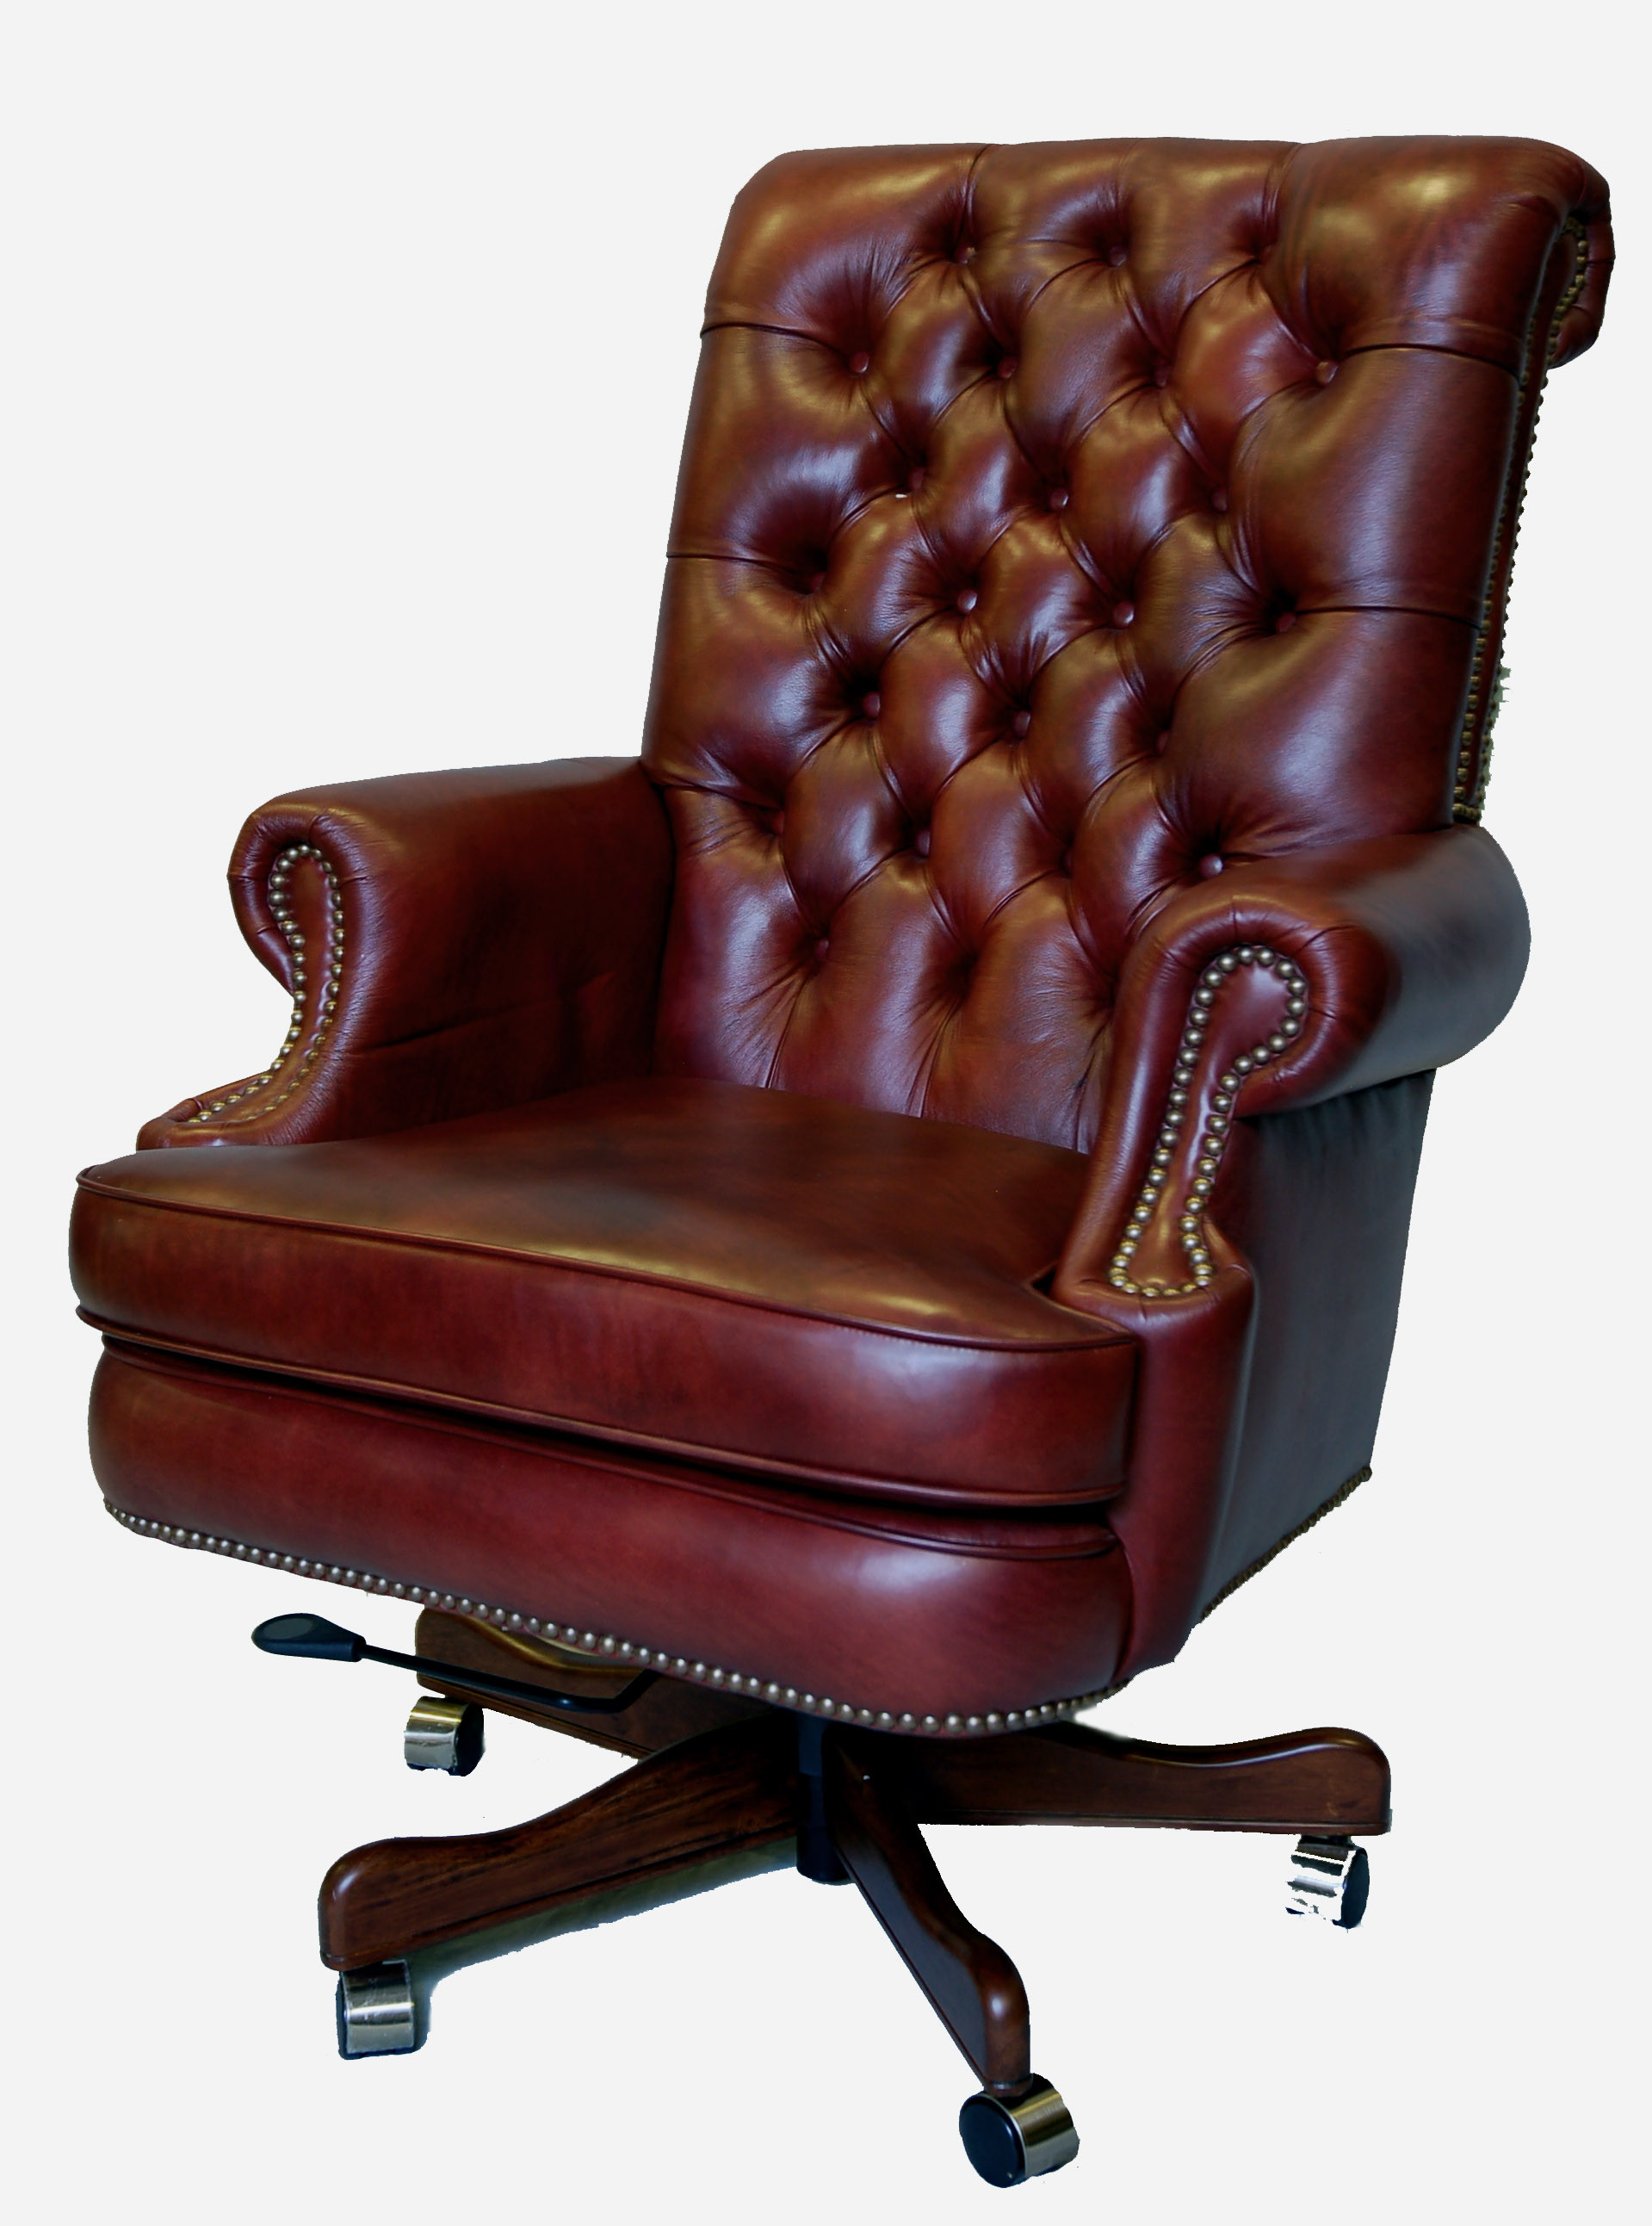 Best ideas about Leather Office Chair . Save or Pin Genuine Leather Executive fice Desk Chair Now.